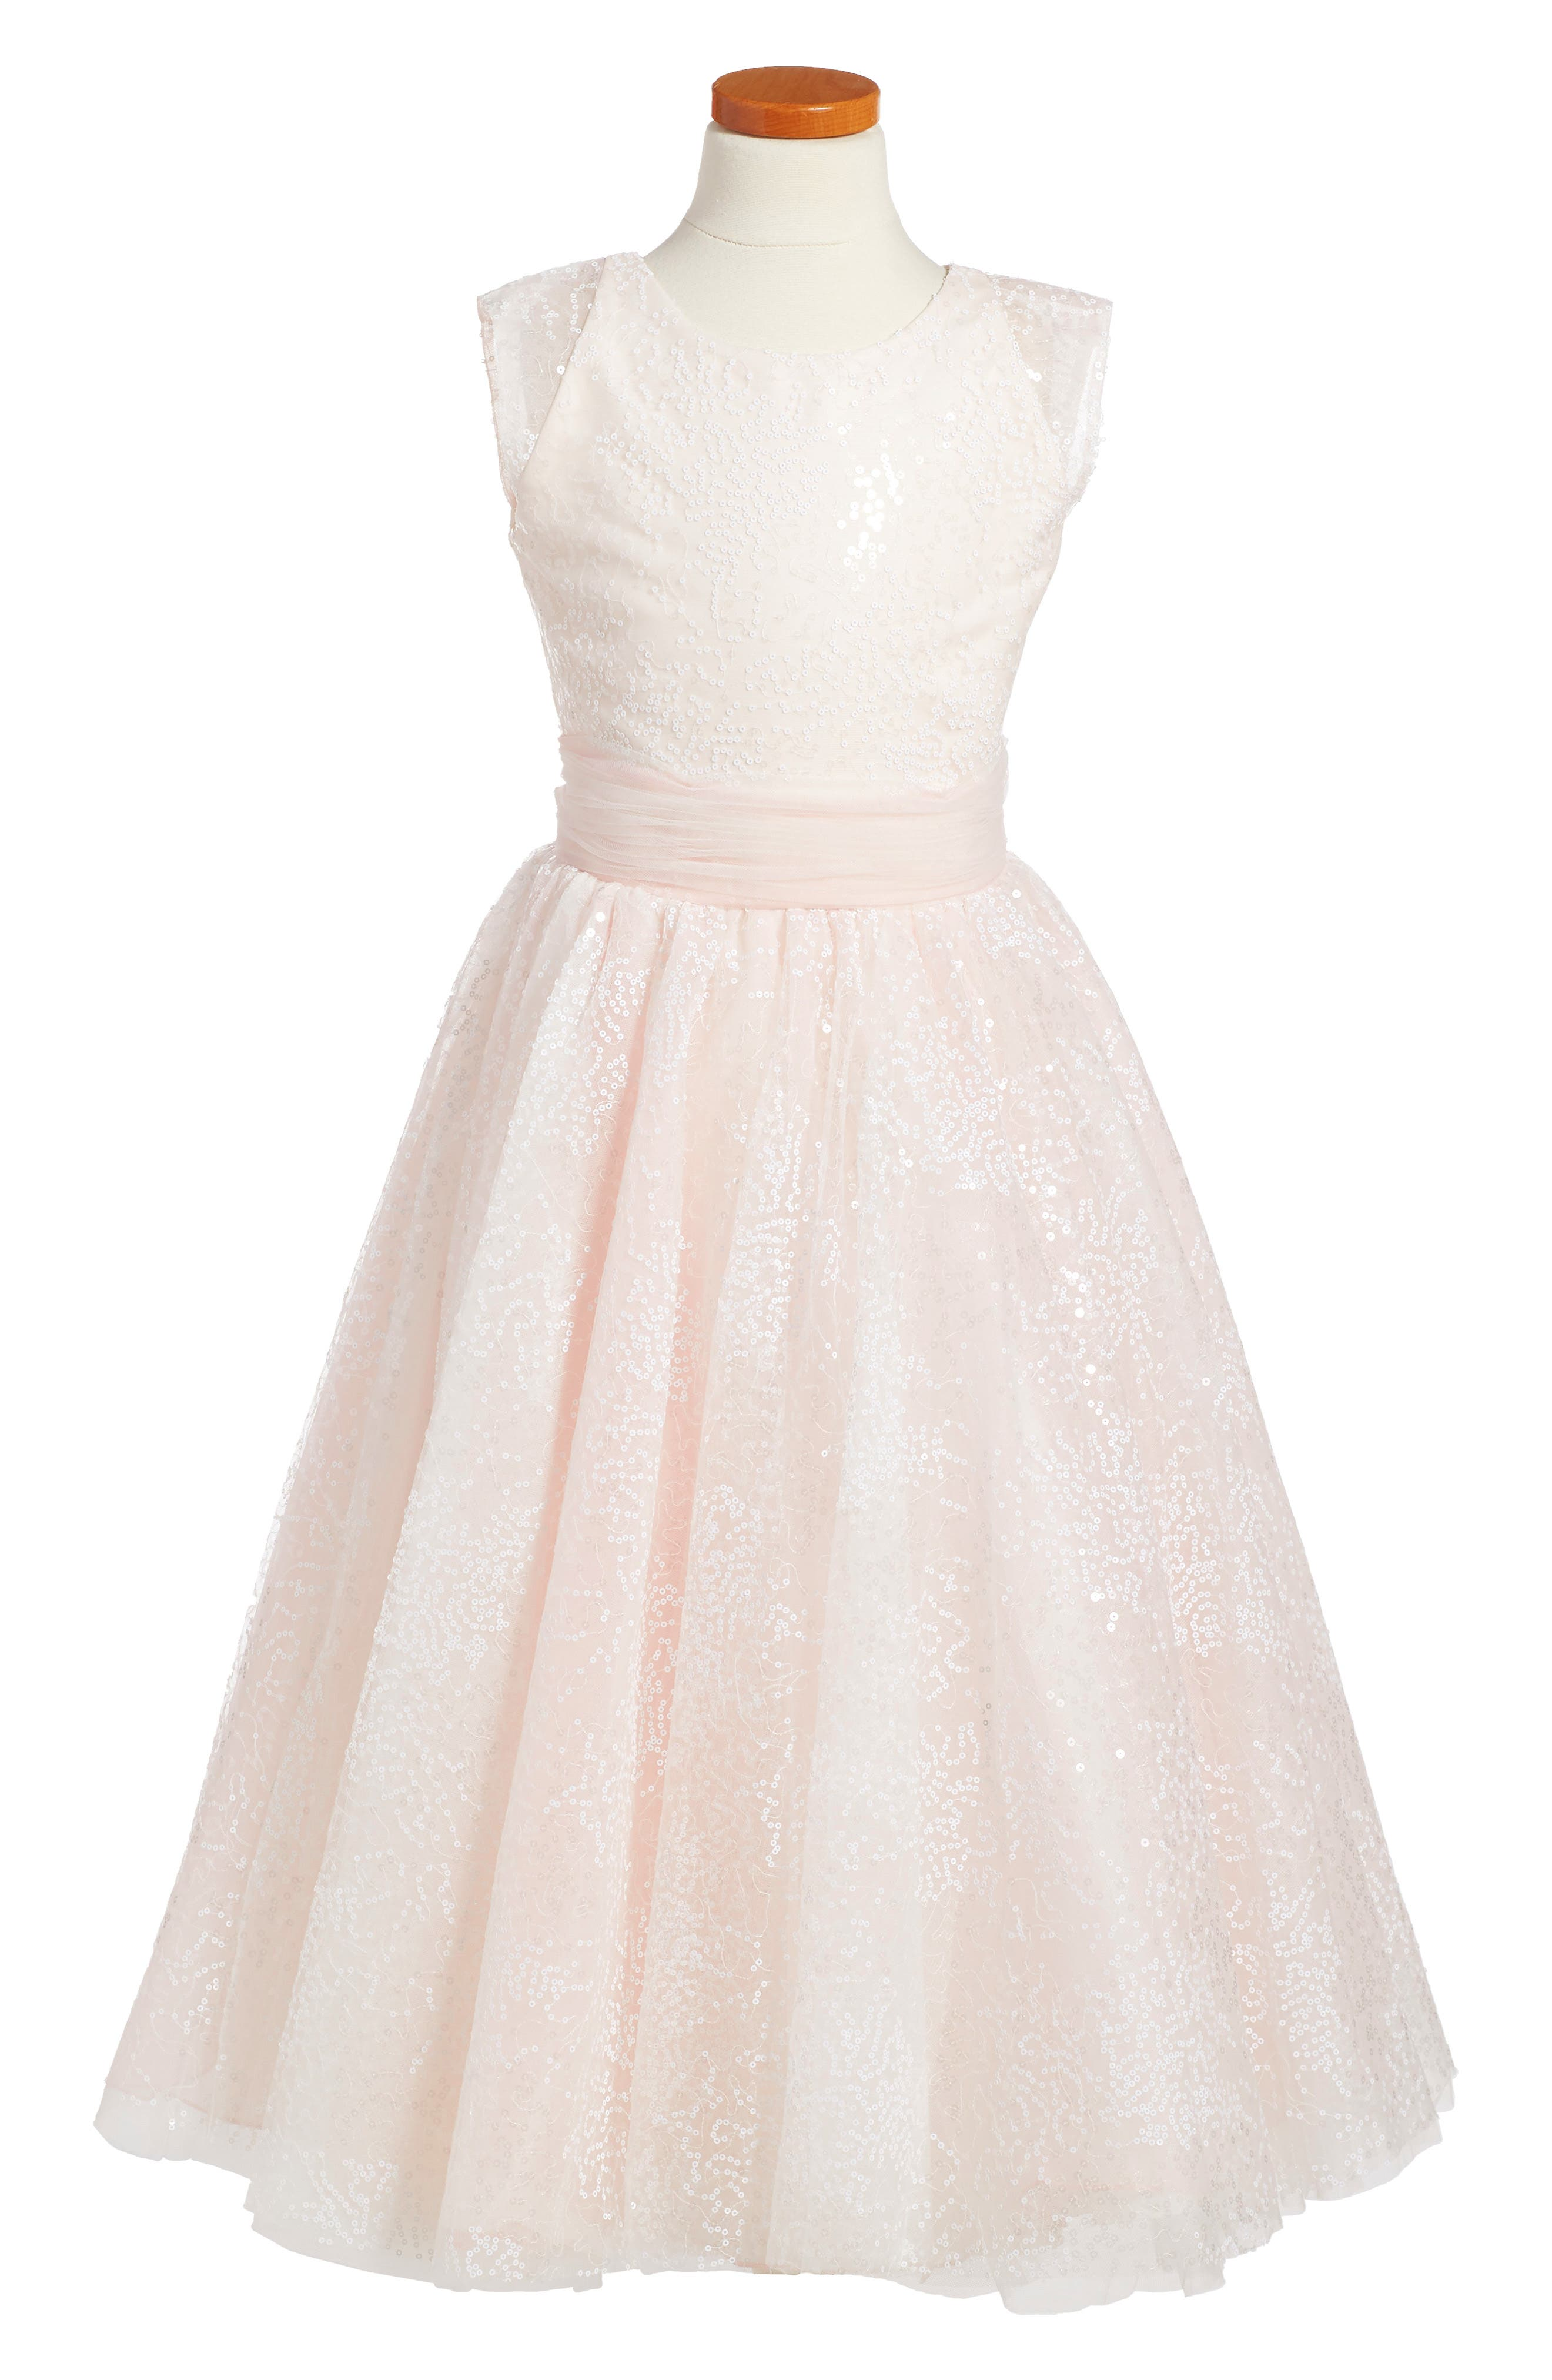 Sequin Tulle Dress,                             Main thumbnail 1, color,                             IVORY/ PINK